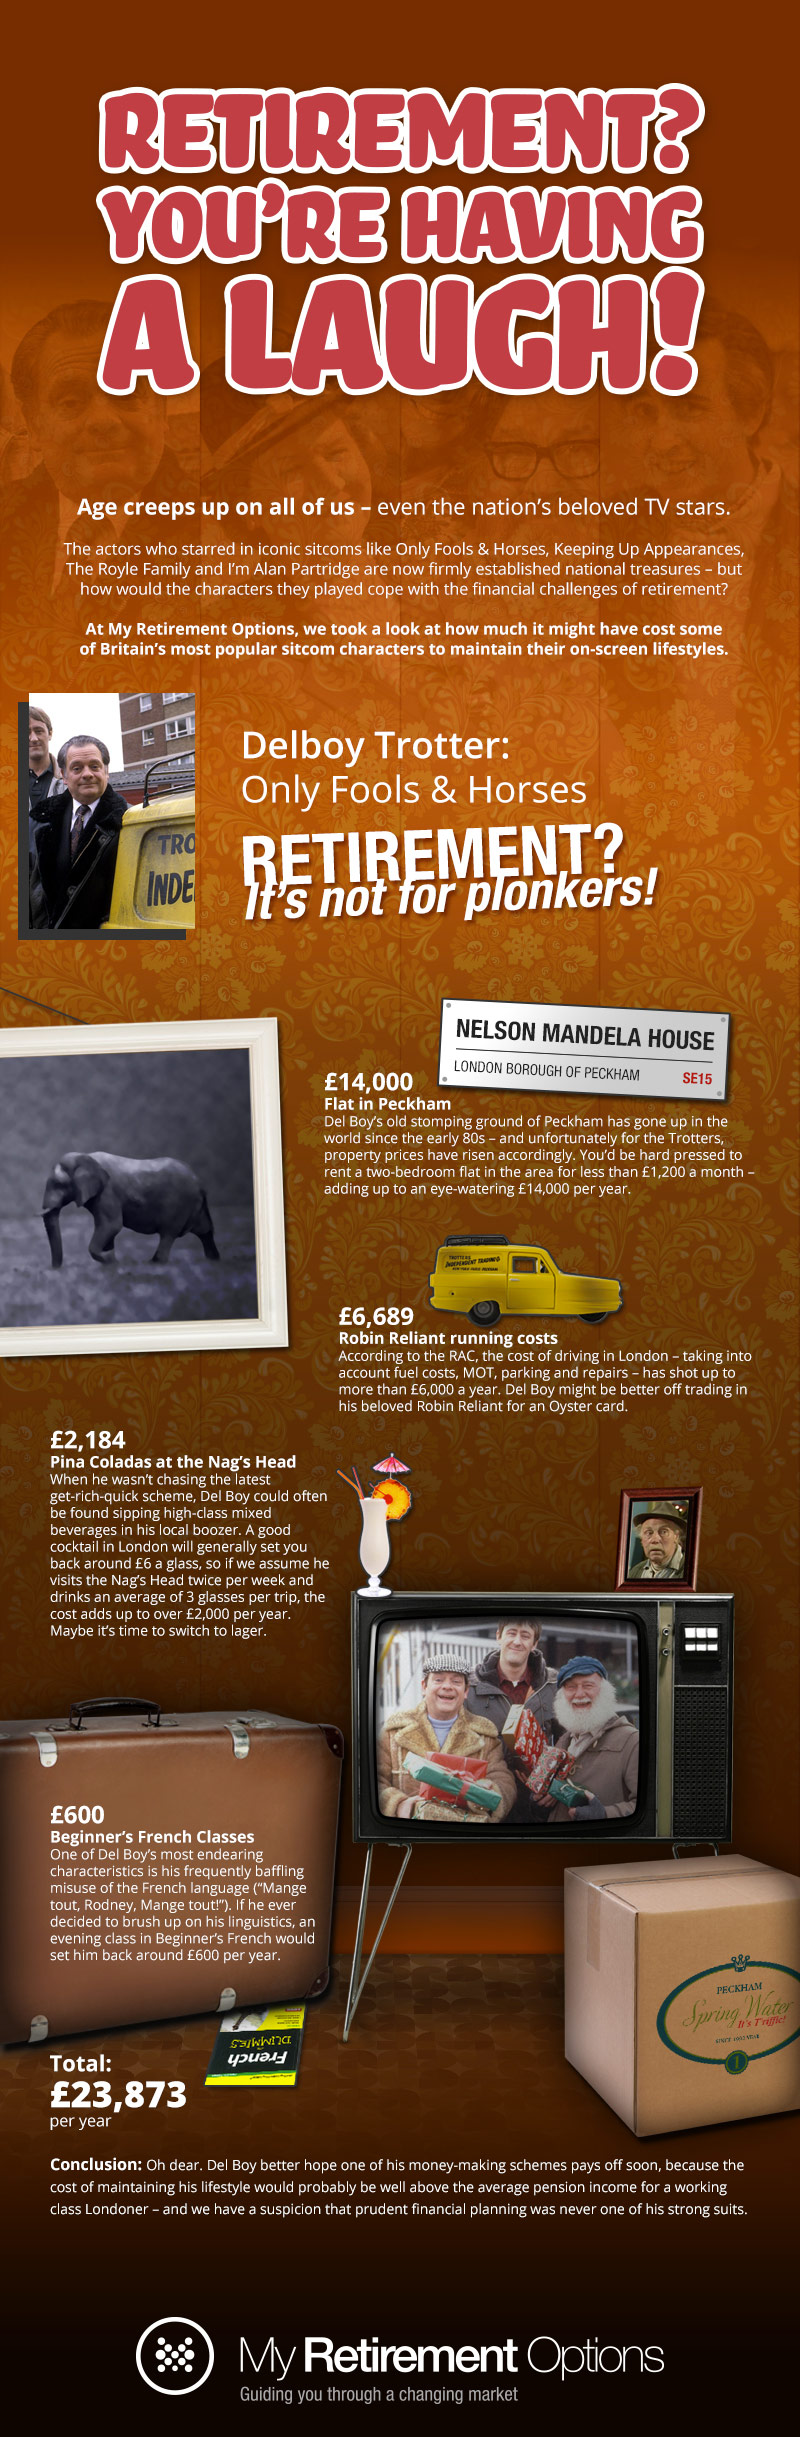 My retirement Options – Retirement? You're Having a Laugh!